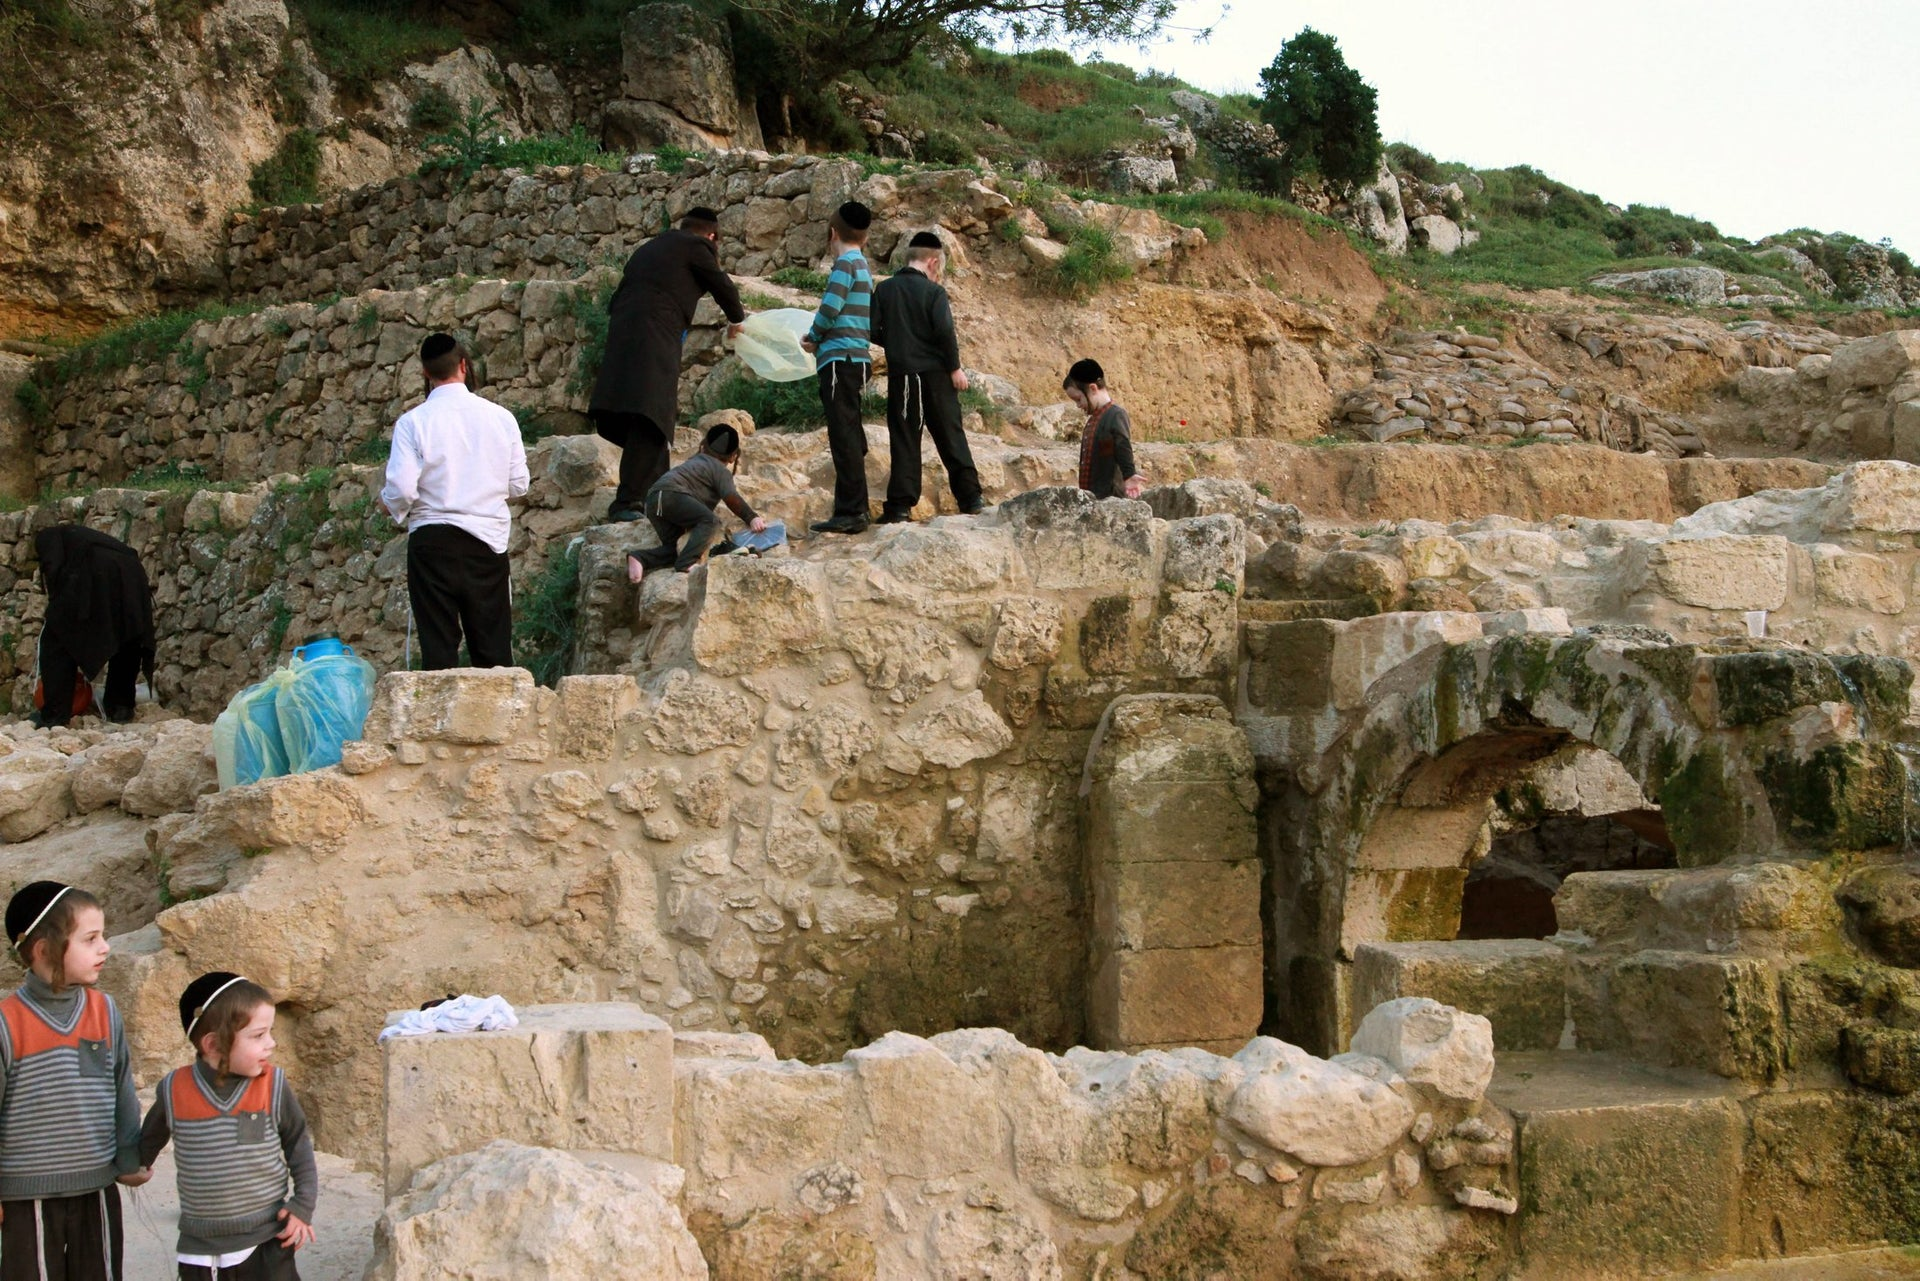 Ultra-Orthodox Jews drawing water from a natural spring for making 'shmura matza' in the Jerusalem Hills, April 4, 2016.